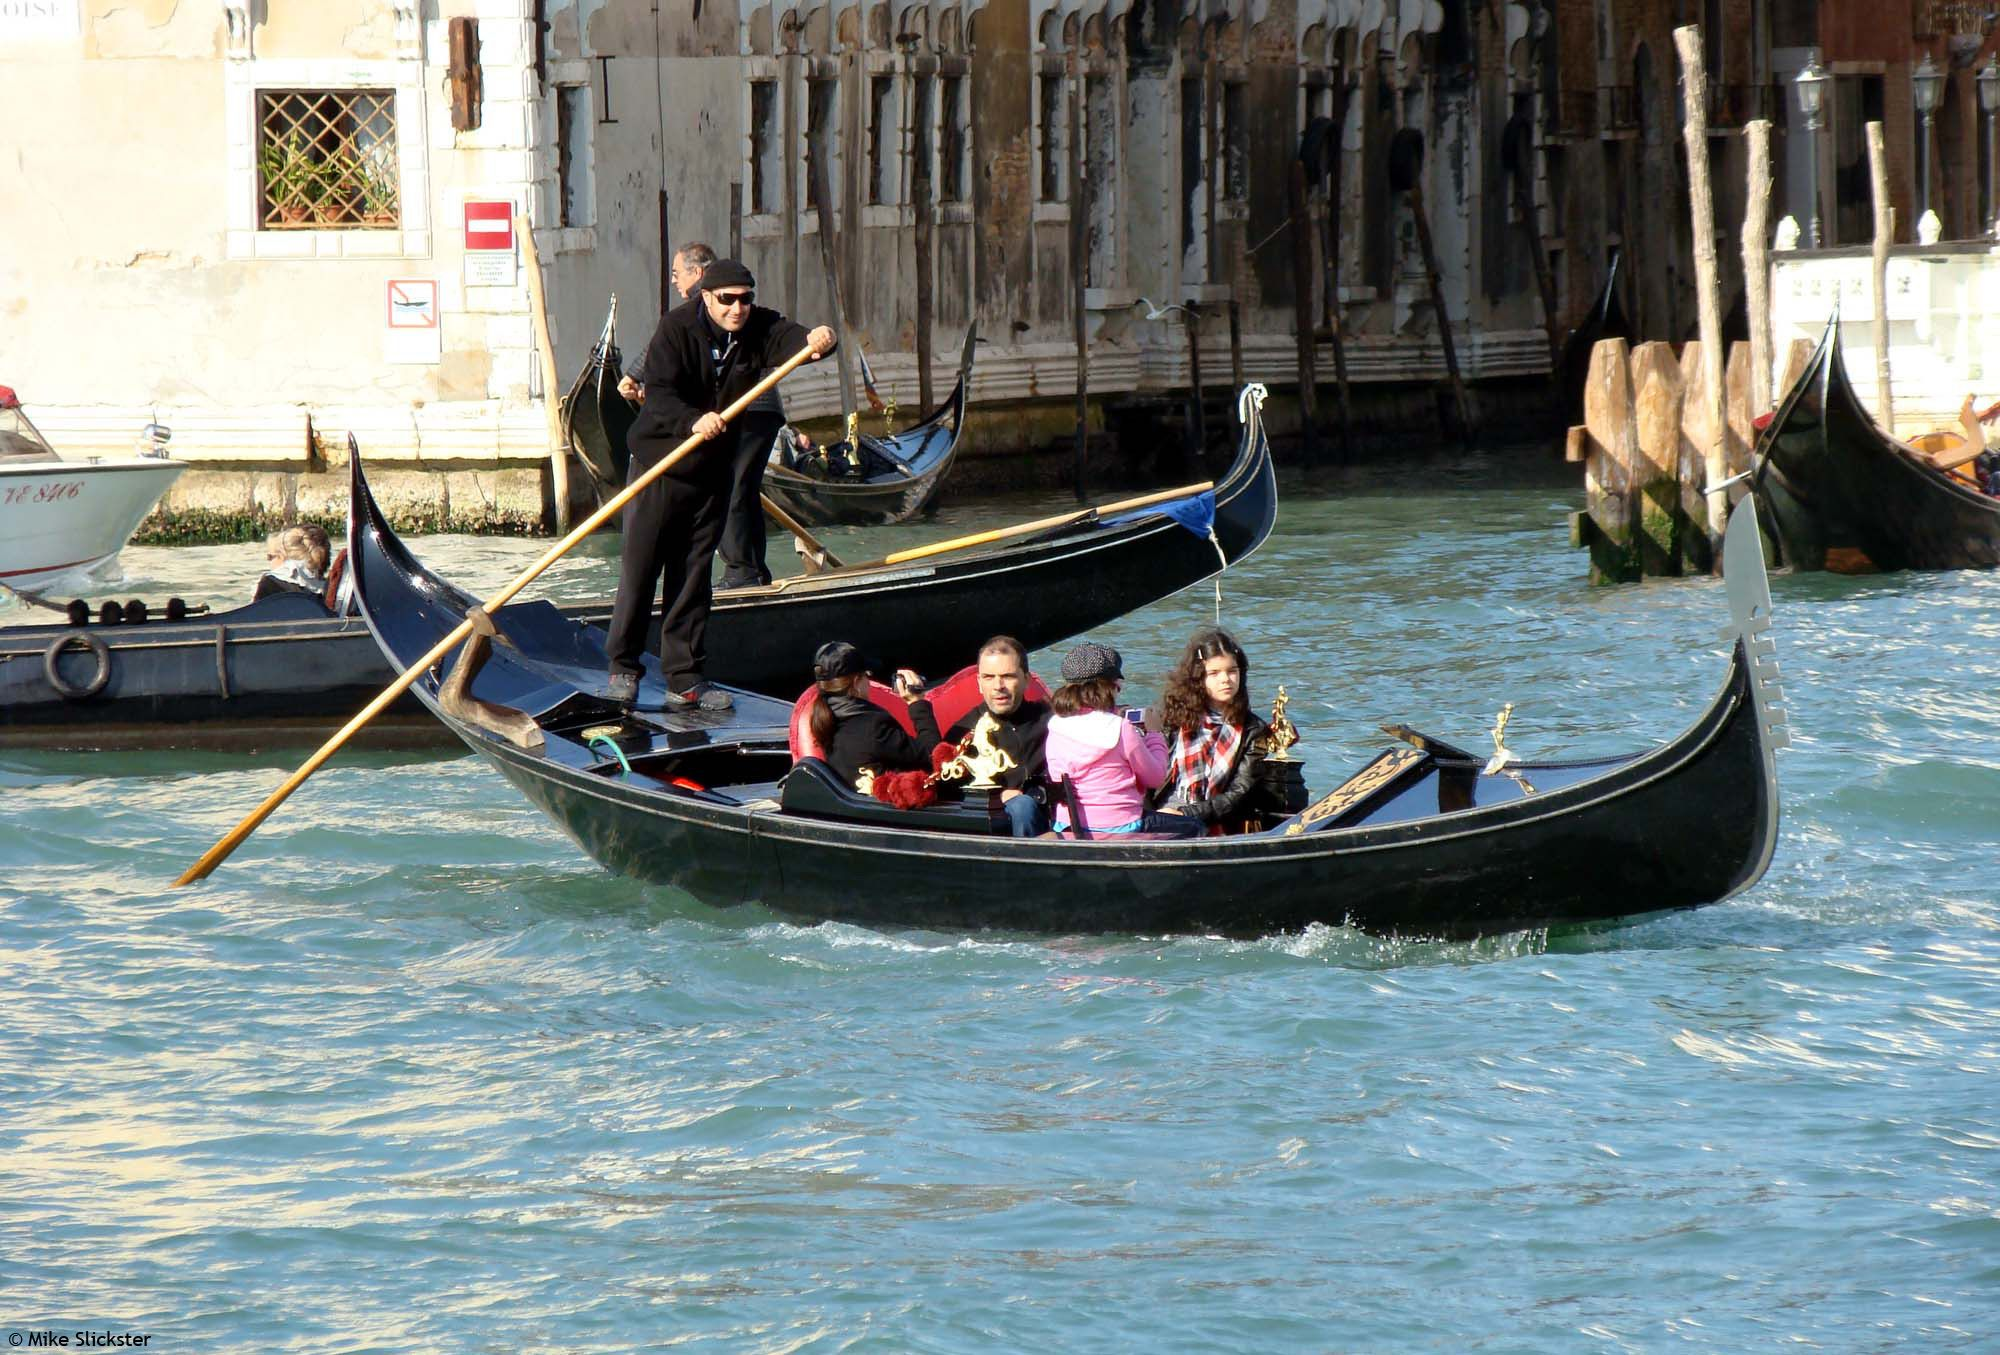 Gondola on the Grand Canal. Is it just me, or does the gondolier look like Randy Quaid?